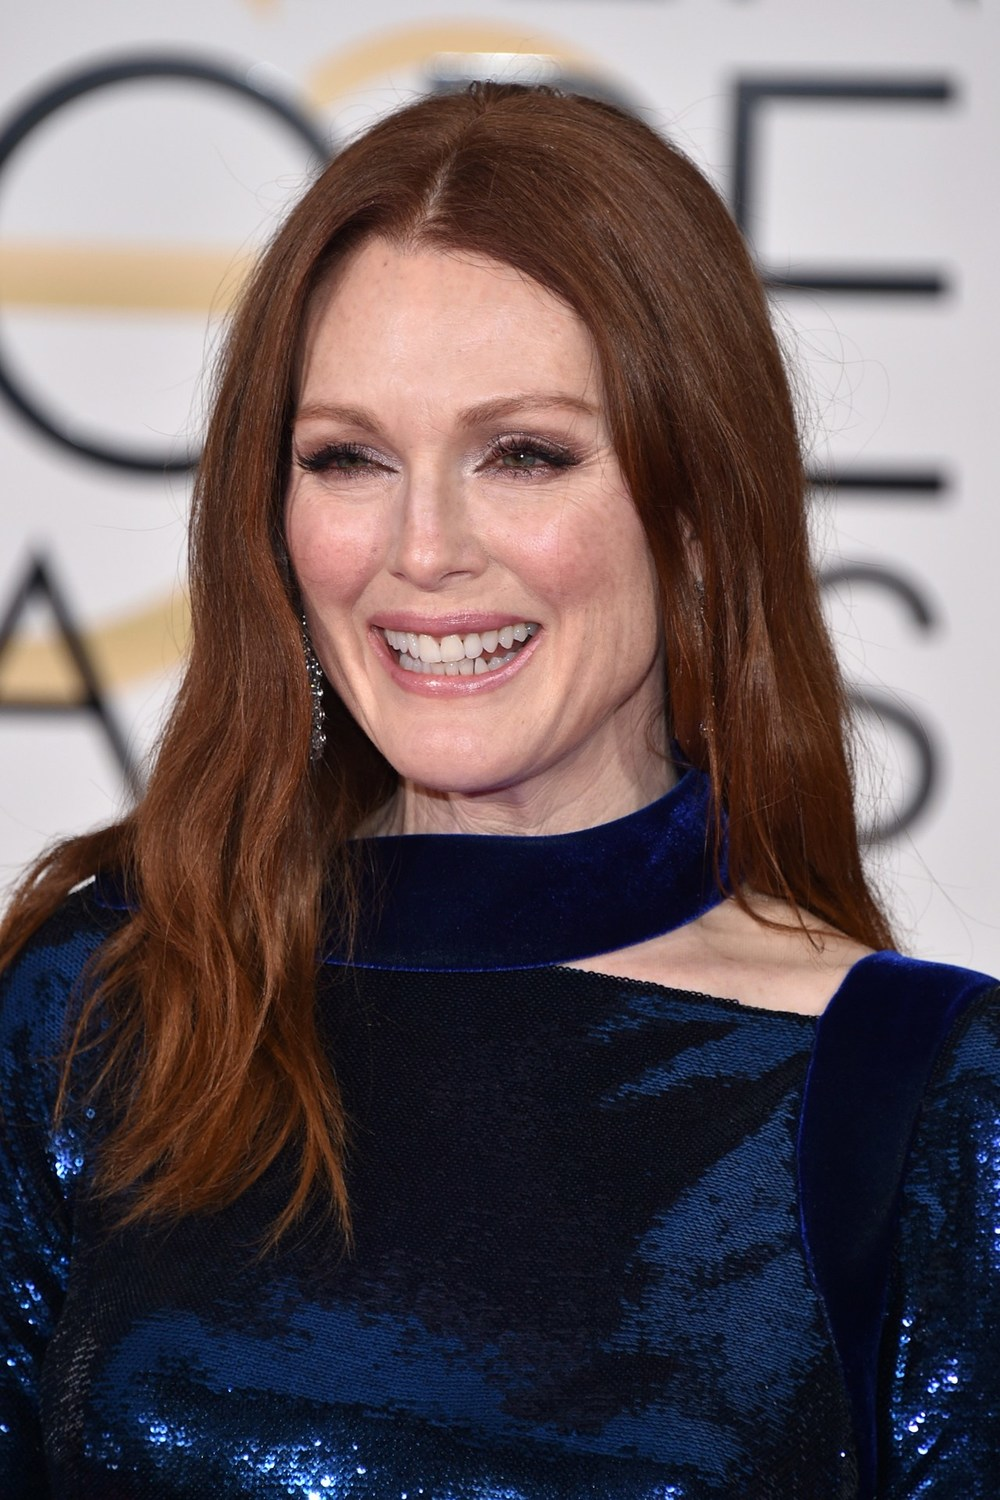 Loose waves, smoky eye make-up and glossy lips made up Julianne Moore's look.